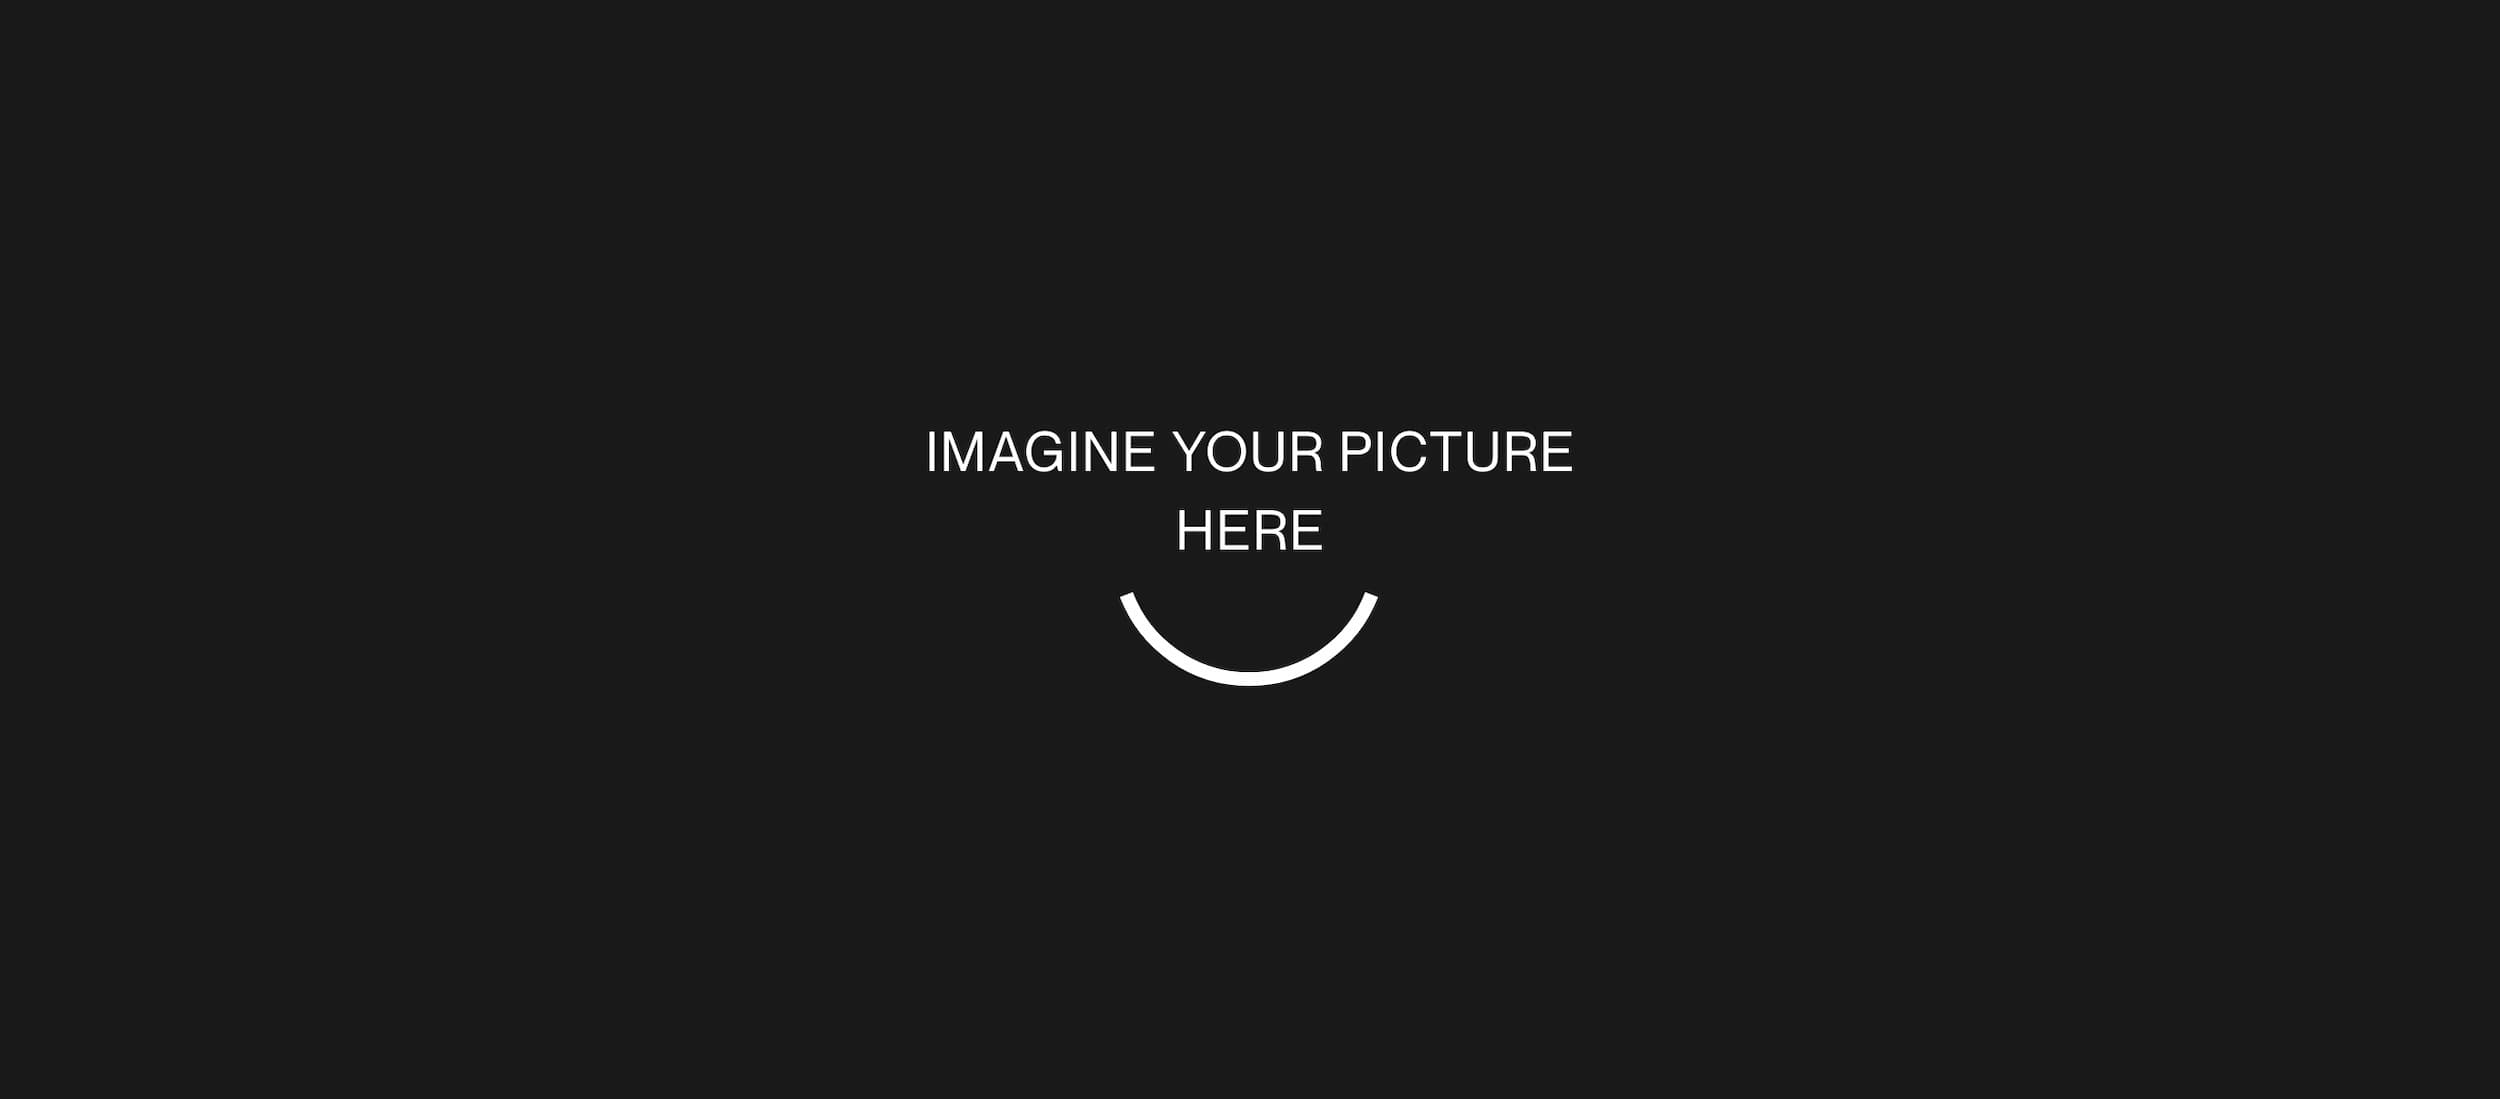 Imagine your picture here